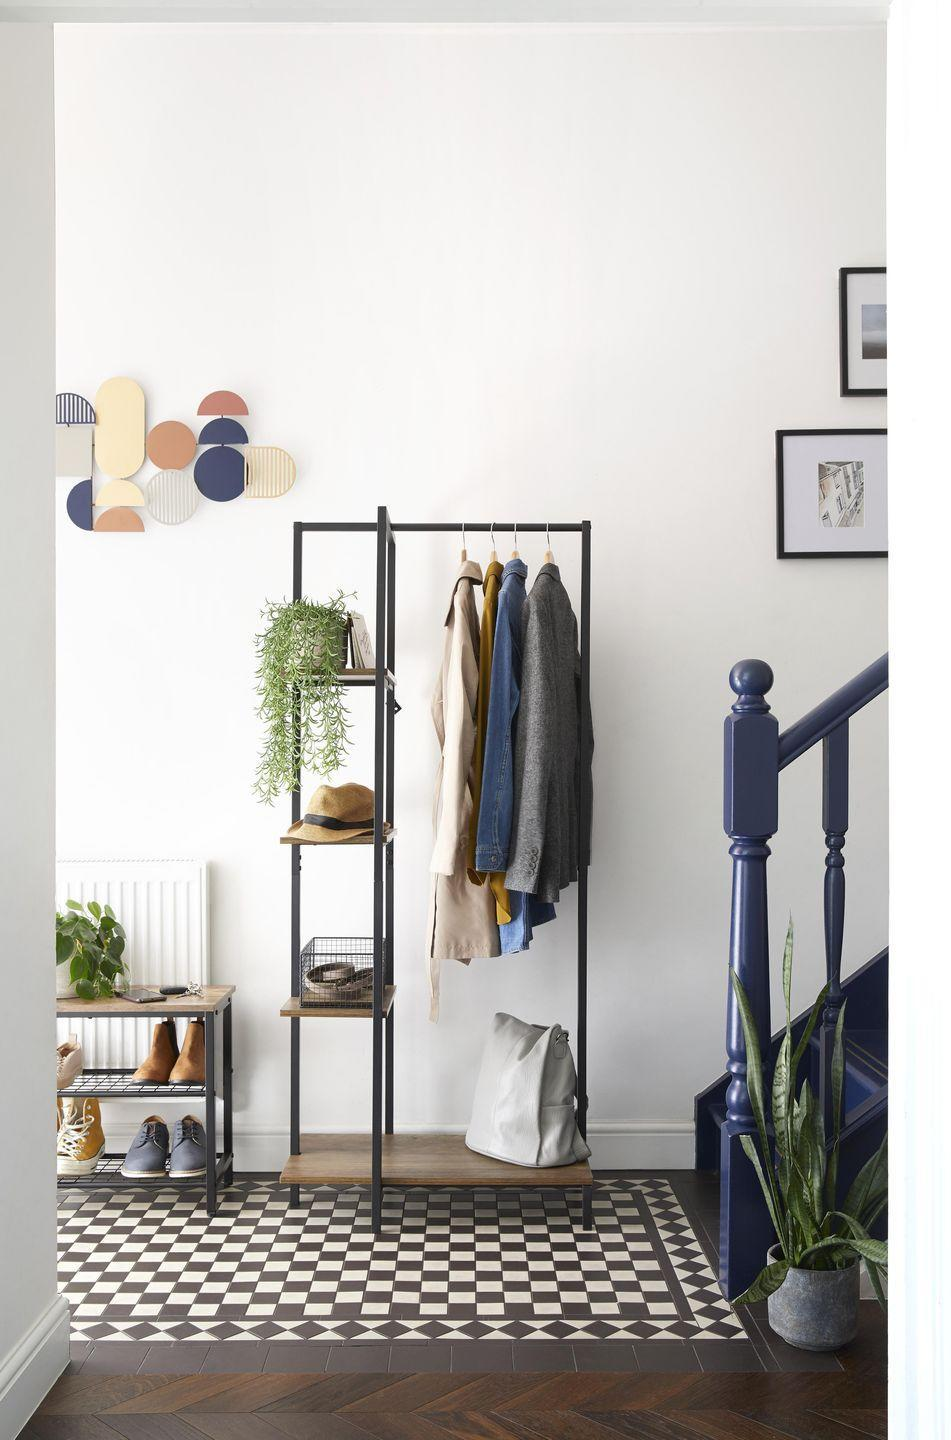 """<p>Get your <a href=""""https://www.housebeautiful.com/uk/lifestyle/cleaning/a35215965/spring-cleaning-decluttering-tips/"""" rel=""""nofollow noopener"""" target=""""_blank"""" data-ylk=""""slk:spring clean"""" class=""""link rapid-noclick-resp"""">spring clean</a> on and declutter your hallway with the help of Dunelm's practical storage units. Keep shoes, coats and bags neatly displayed without breaking the bank. </p><p>Dunelm say: 'Organise your space in style with this ultra<br>minimal Scandi inspired clothes rail, complete with shelving to store shoes, accessories and trinkets.'<br></p>"""